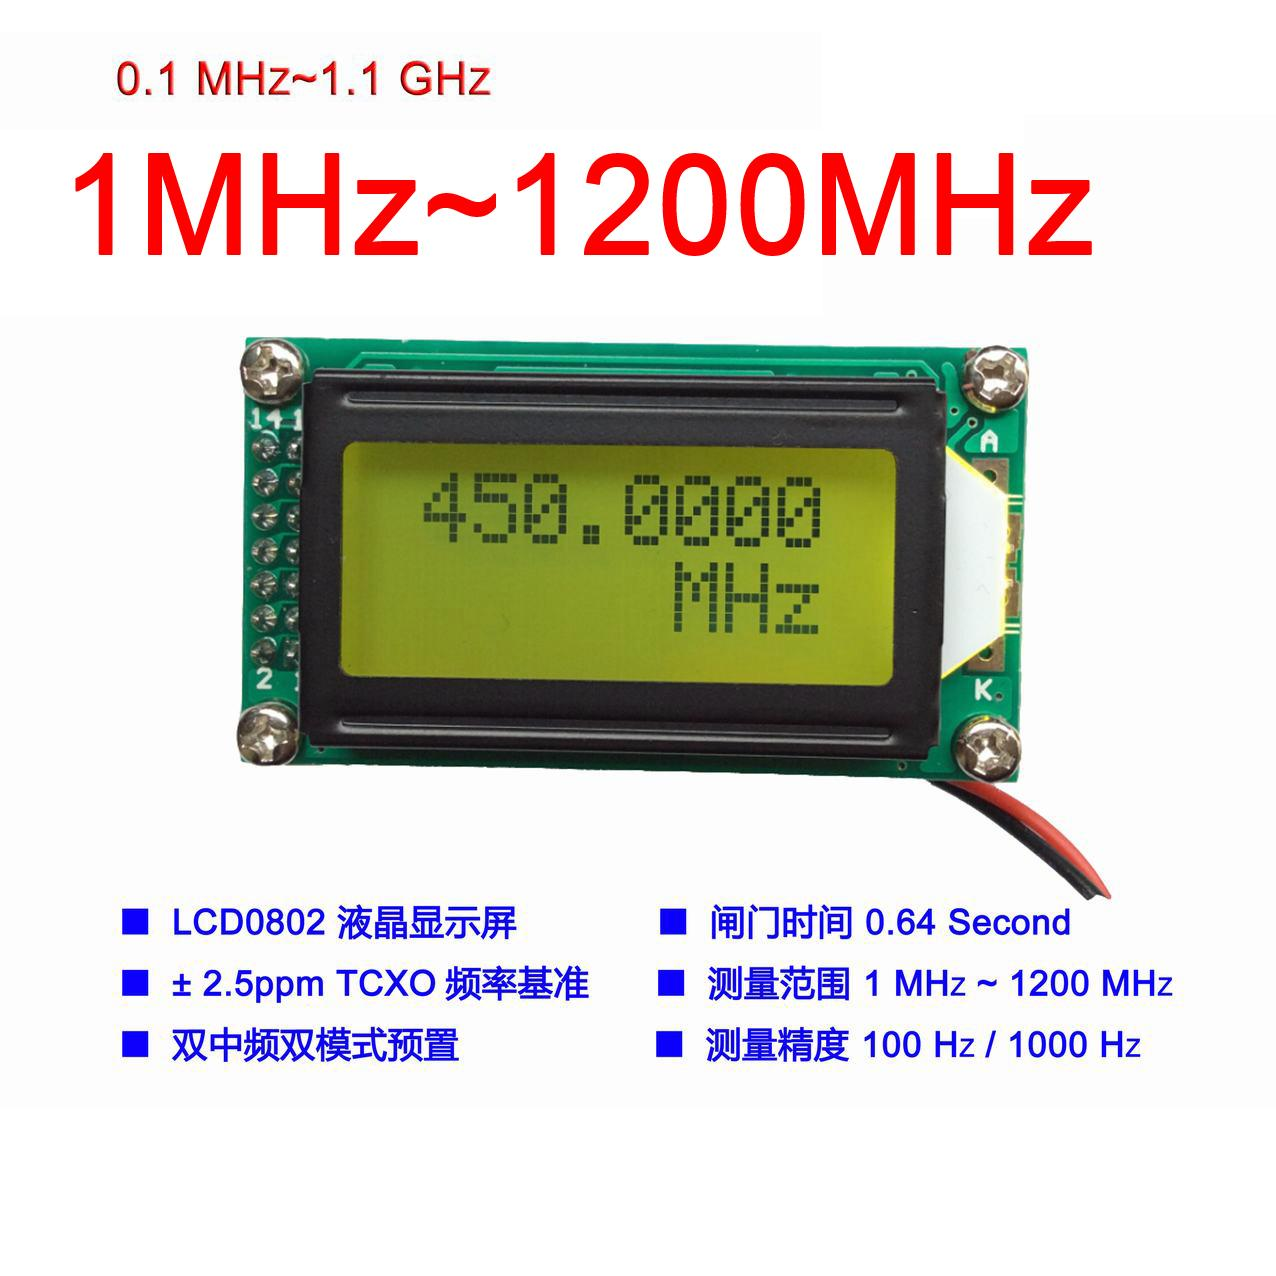 Freeshipping 1MHz~1200MHz 1 2 GHz RF Frequency Counter Tester Digital LED  METER PIC16F648A FOR Ham Radio Amplifier